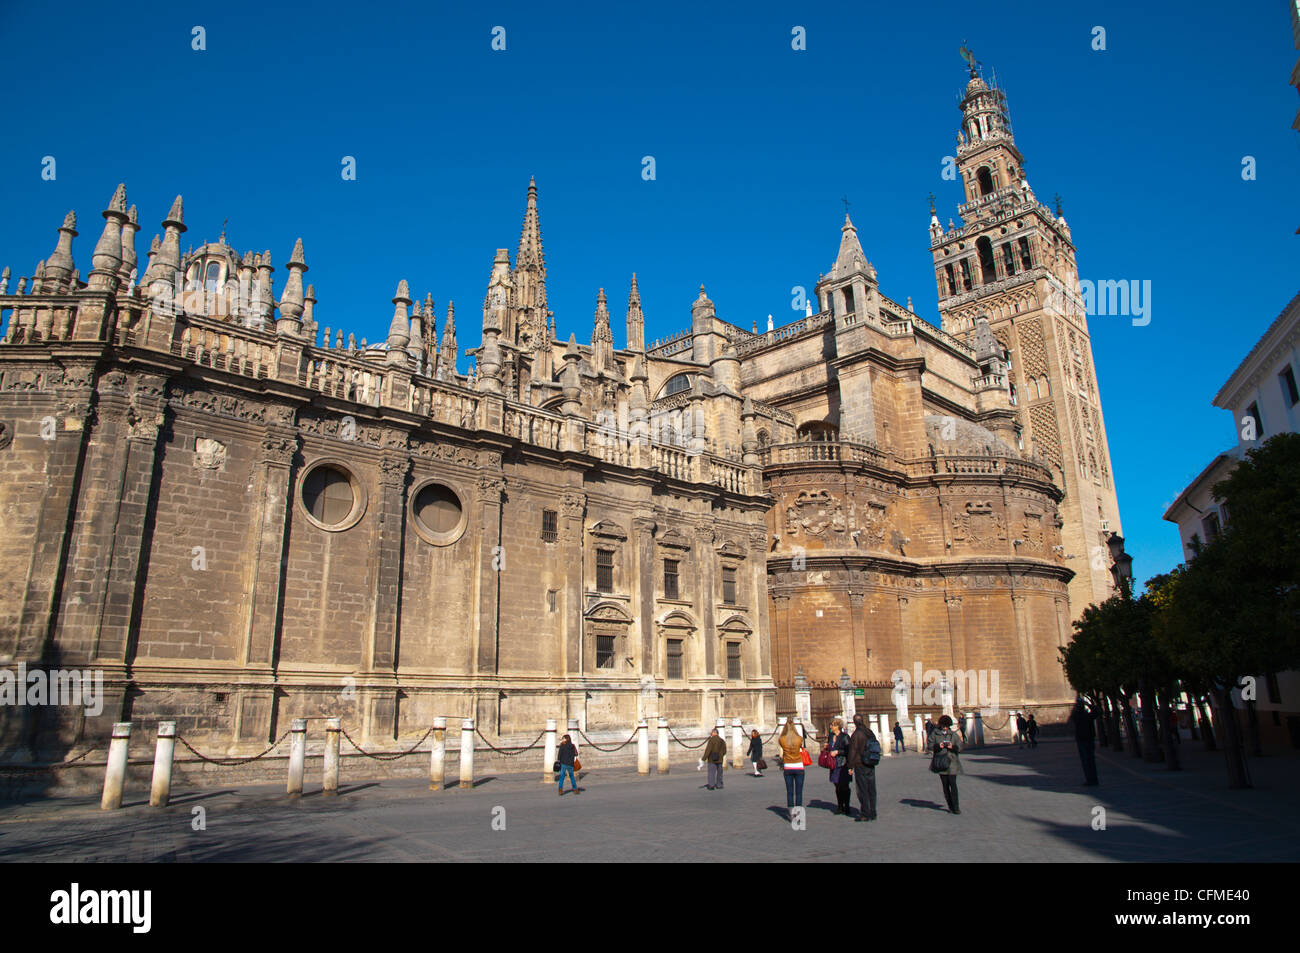 La Giralda and cathedral exterior Plaza Virgen de los Reyes square central Seville Andalusia Spain - Stock Image